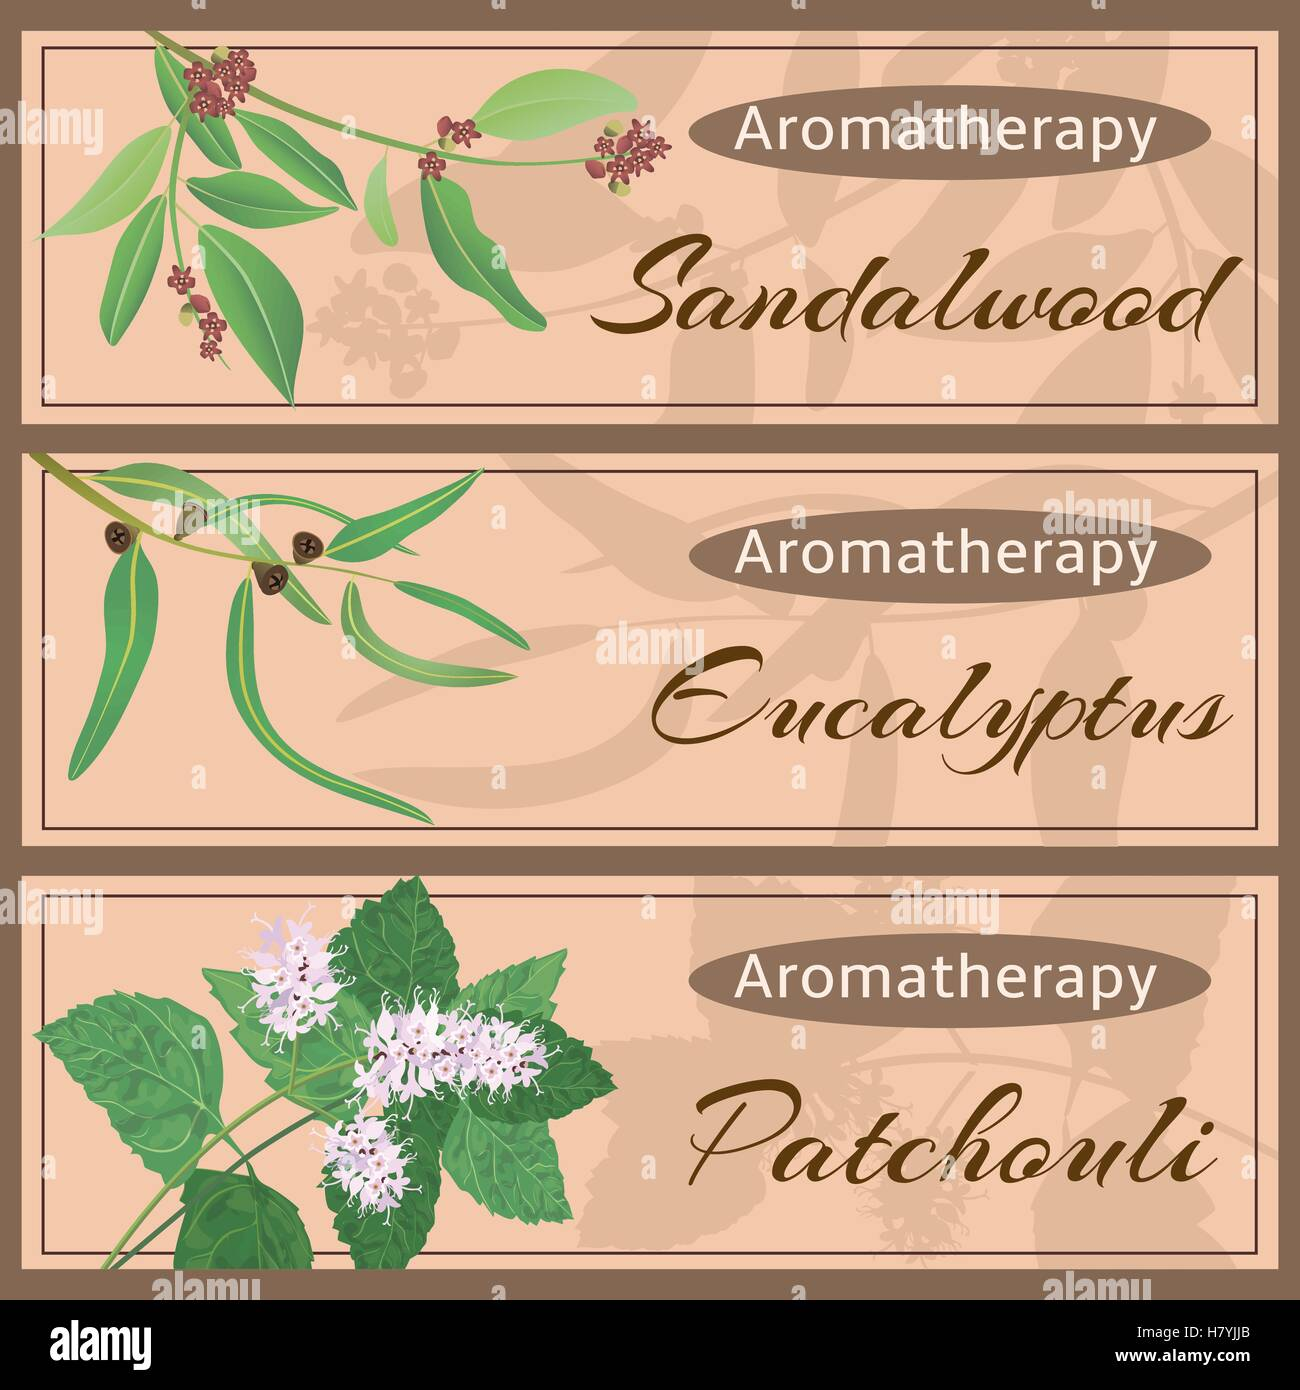 Aromatherapy set collection. Sandalwood, eucalyptus, patchouli banner set. Vector illustration EPS 10. - Stock Vector